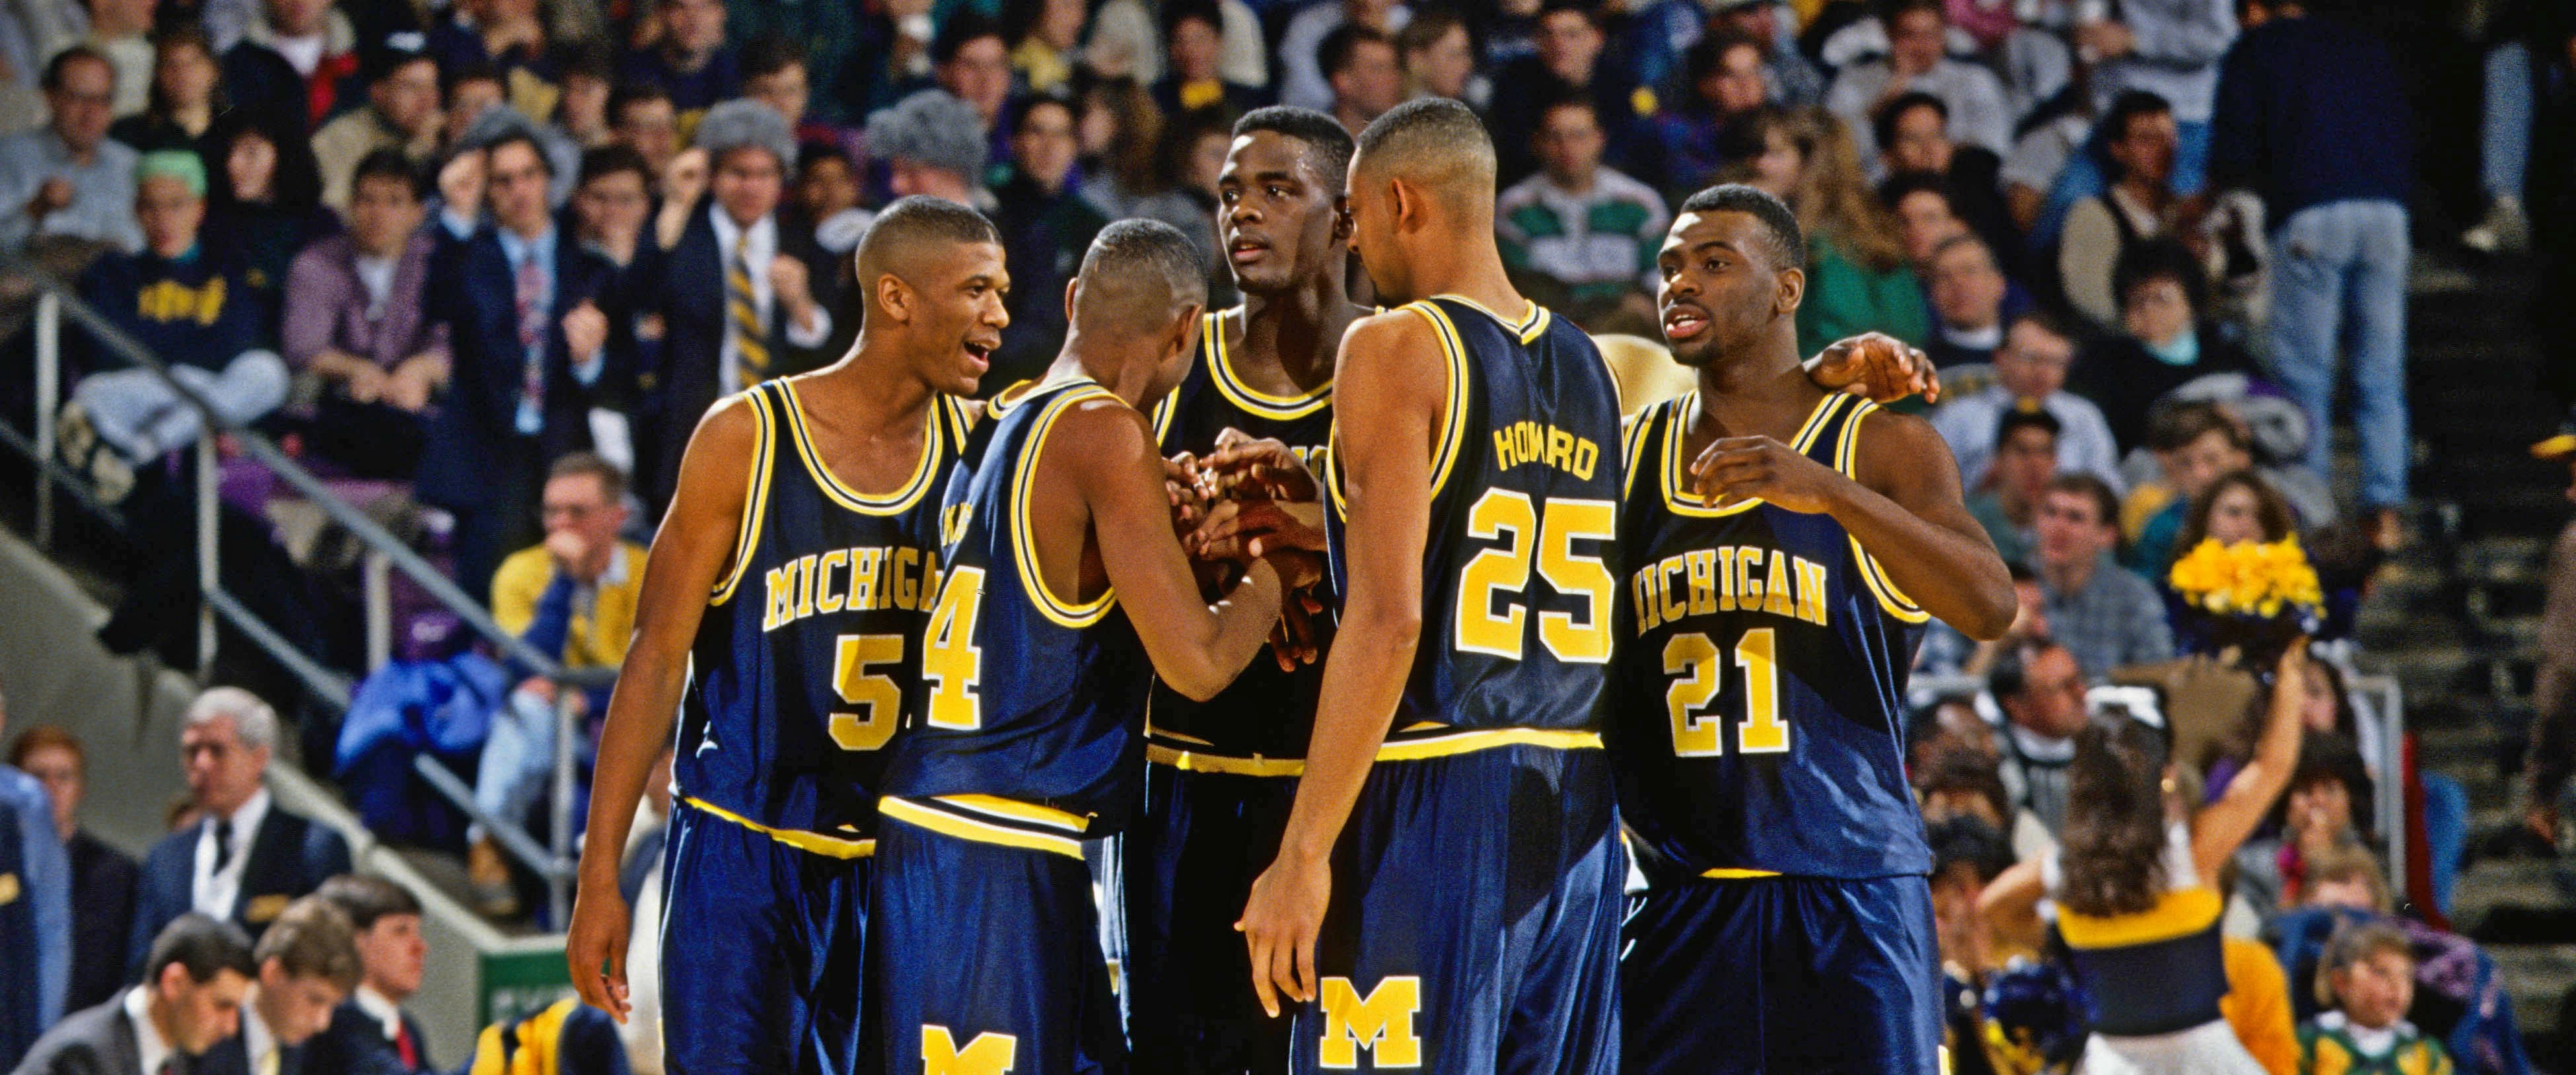 FAB FIVE: THE LEGACY